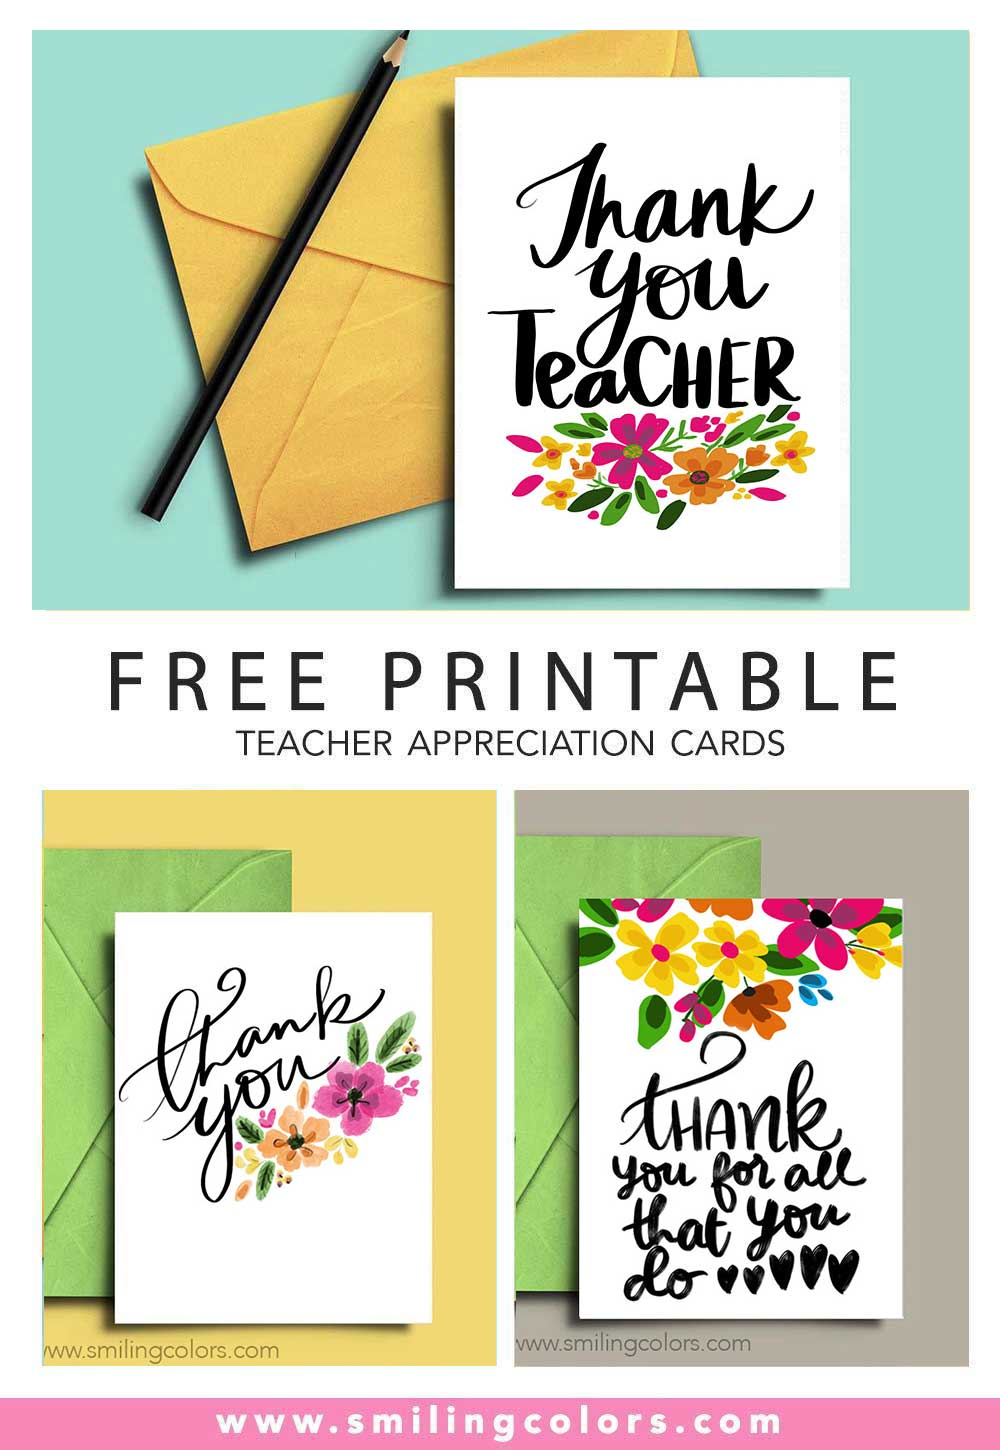 photograph about Printable Christmas Cards for Teachers named Thank your self instructor: A fastened of No cost printable observe playing cards